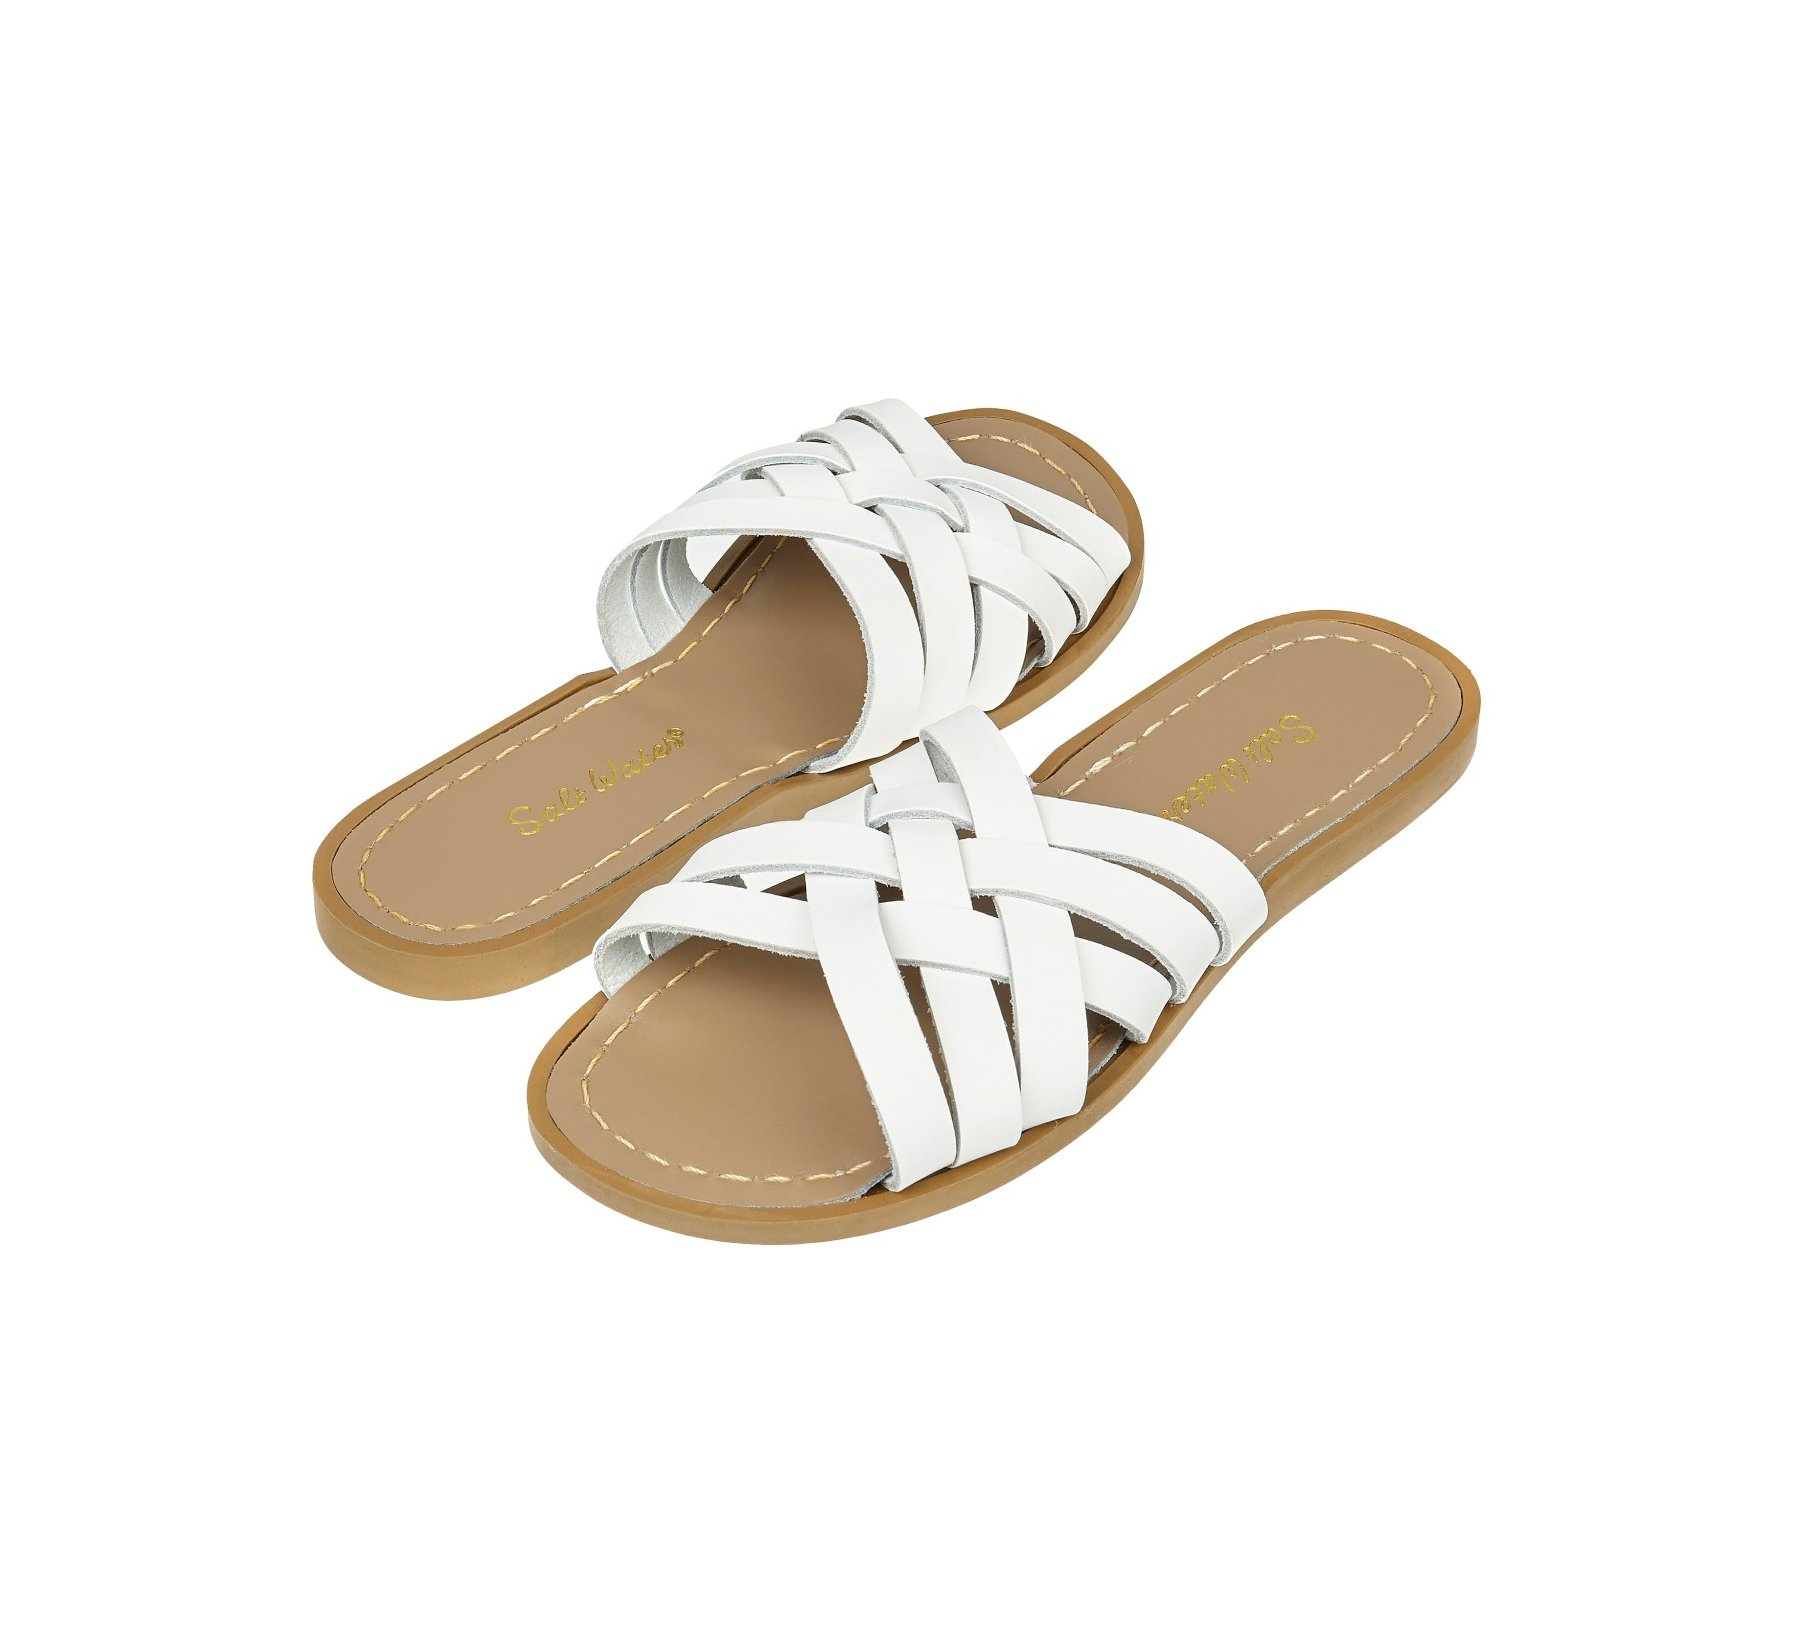 Retro Slide in Weiß - Salt Water Sandals